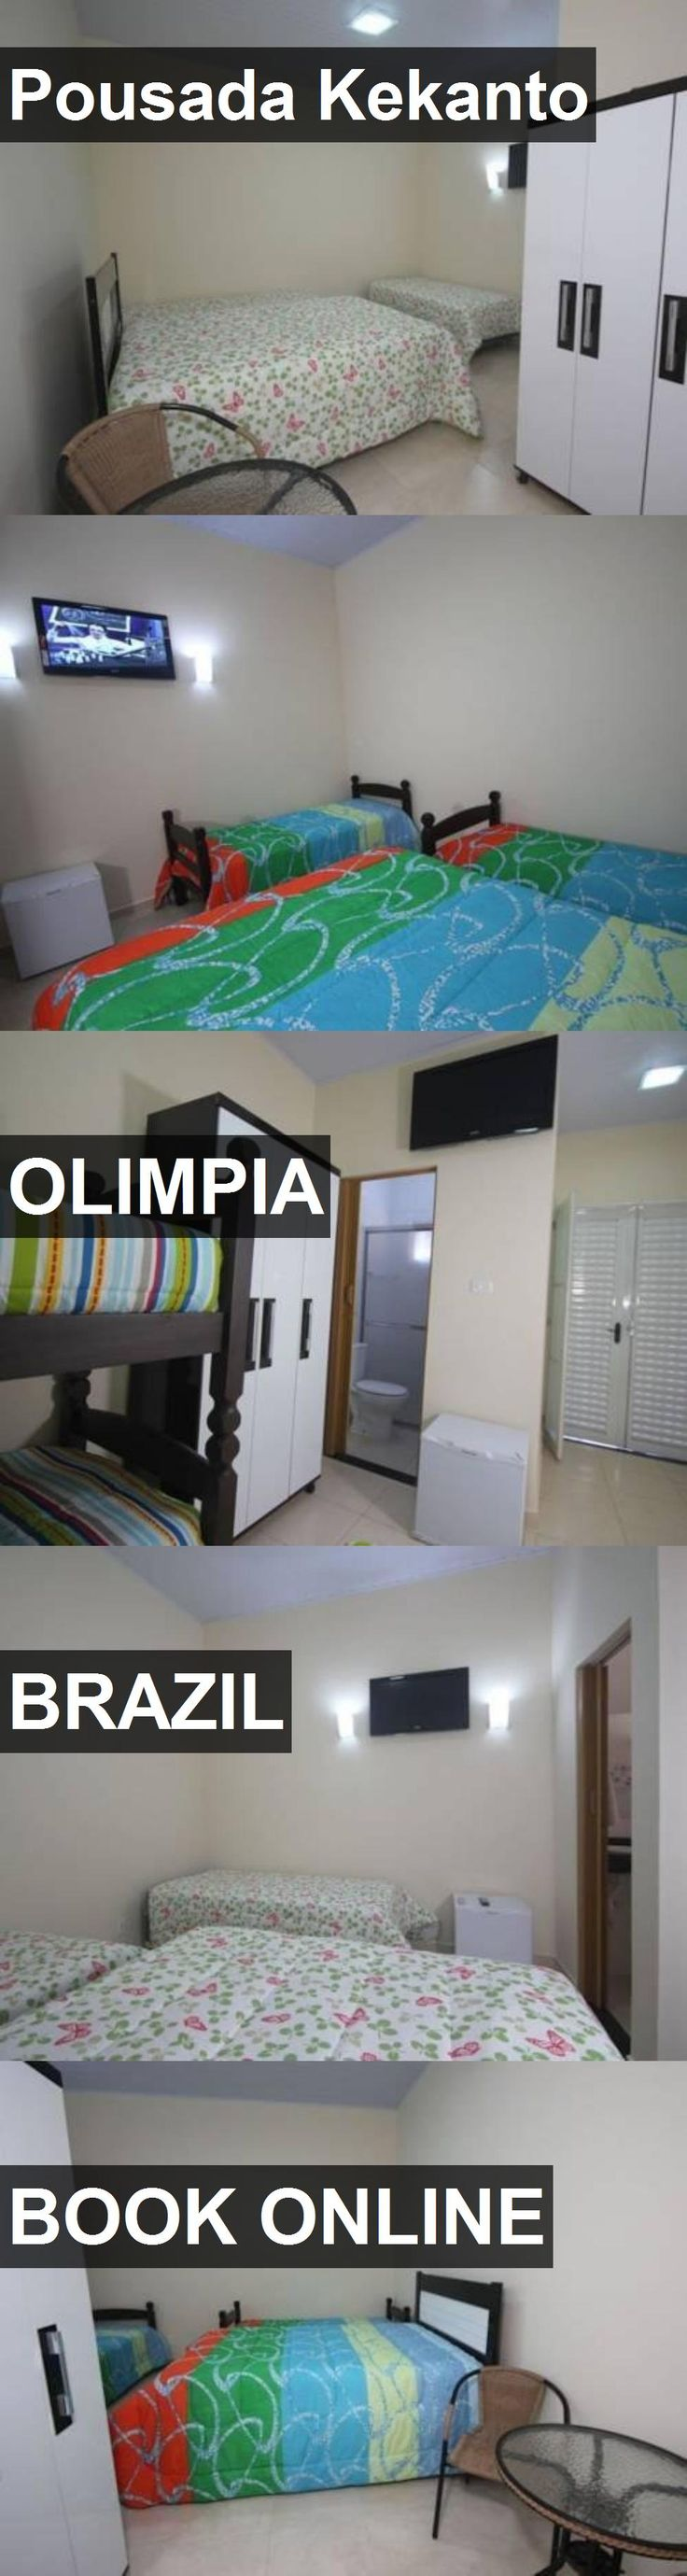 Hotel Pousada Kekanto in Olimpia, Brazil. For more information, photos, reviews and best prices please follow the link. #Brazil #Olimpia #PousadaKekanto #hotel #travel #vacation